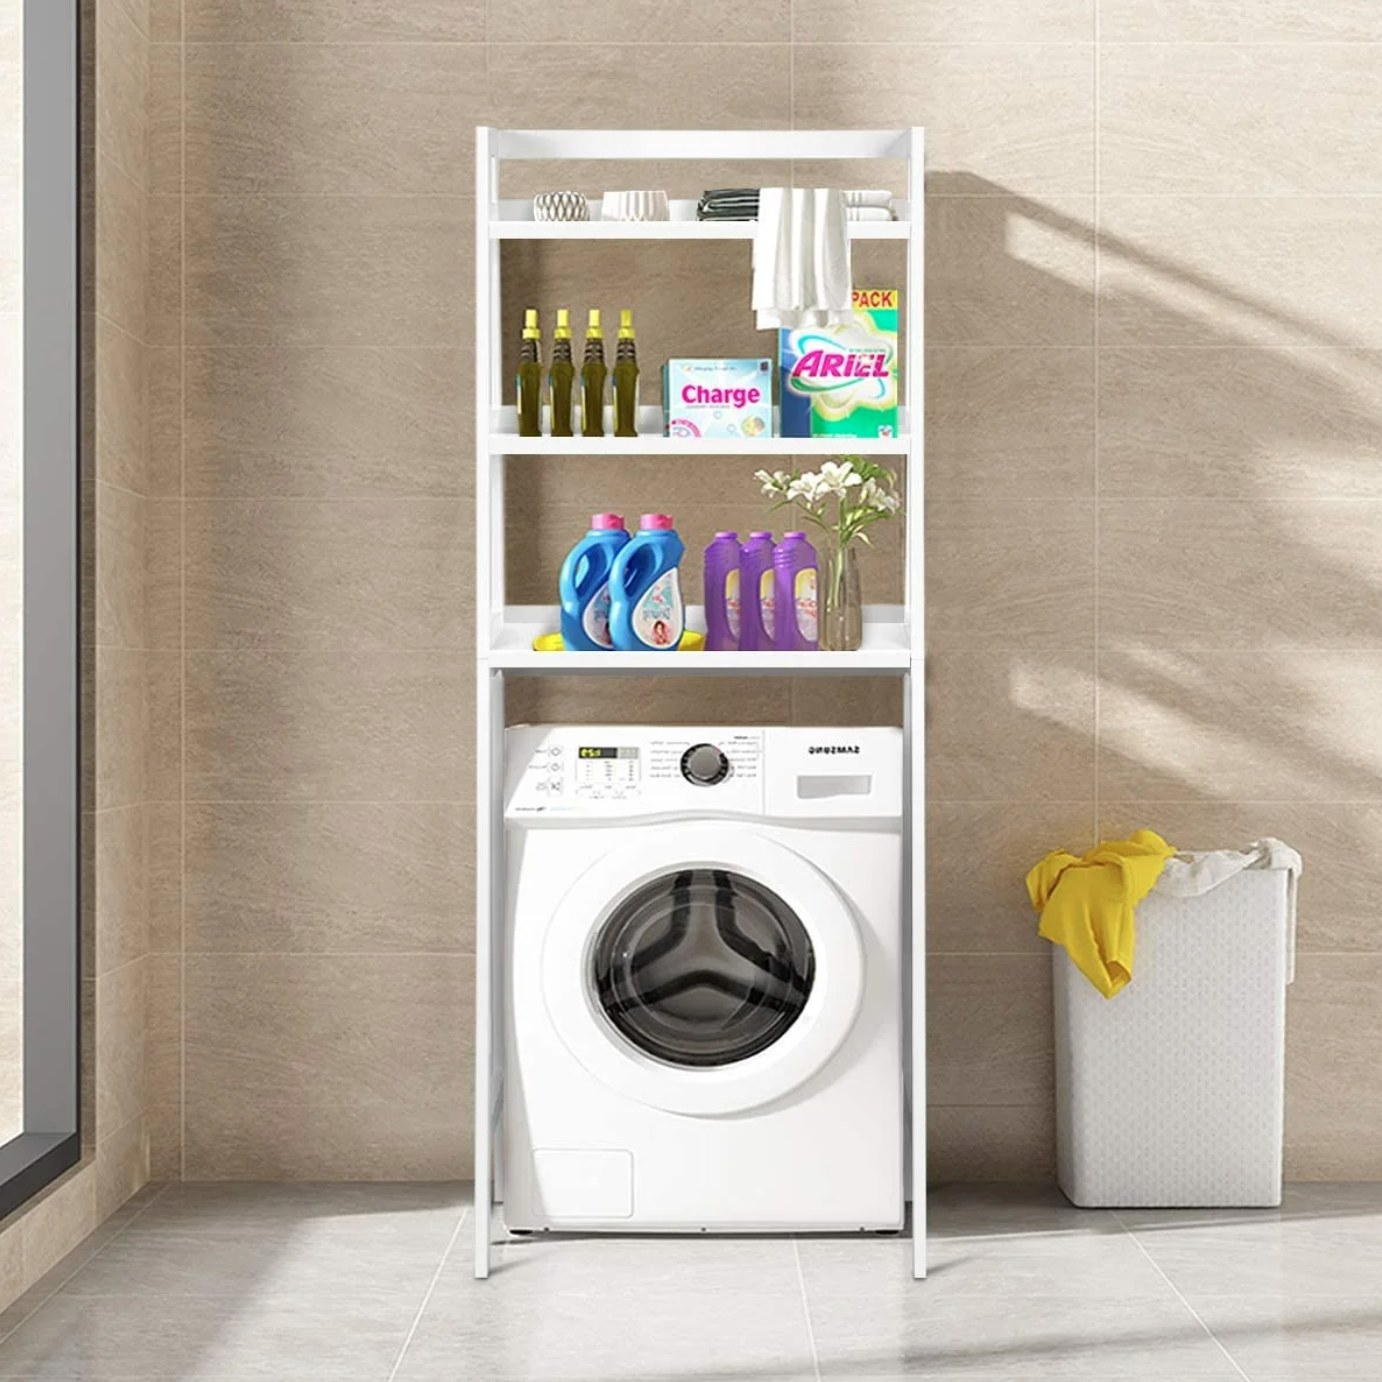 The over-the-toilet storage shelving unit in white